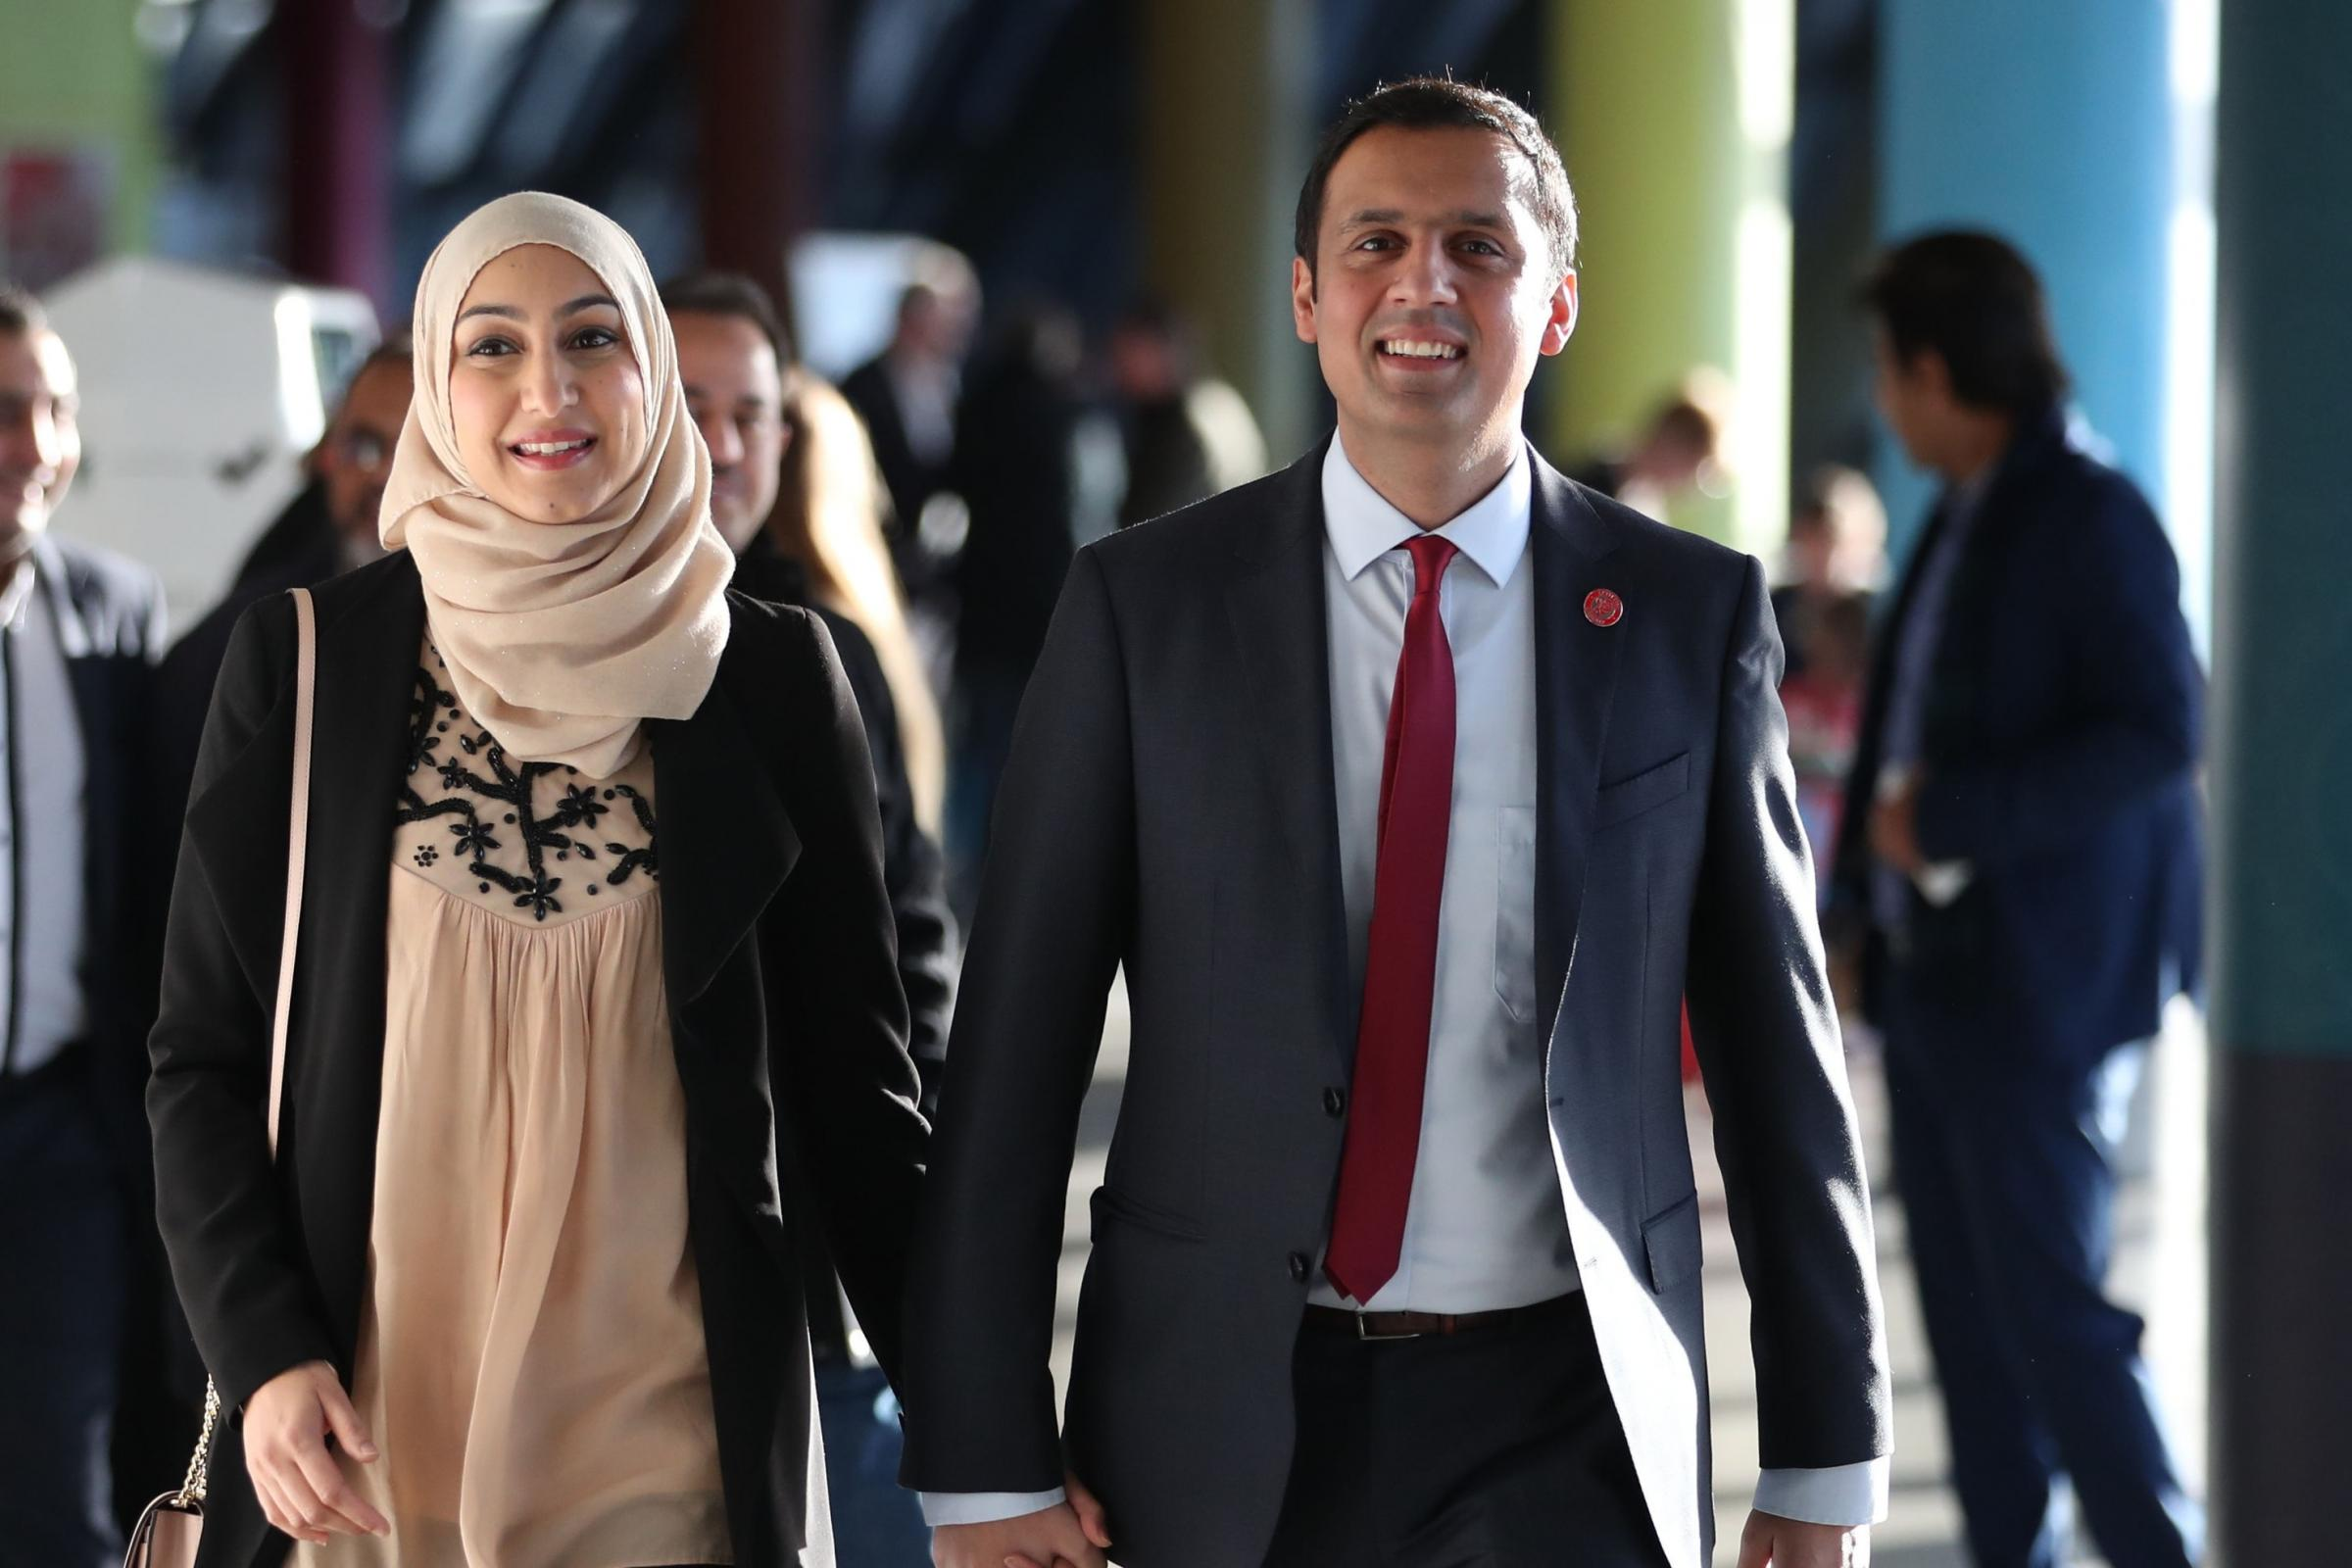 Labour MSP Anas Sarwar and his wife Furheen